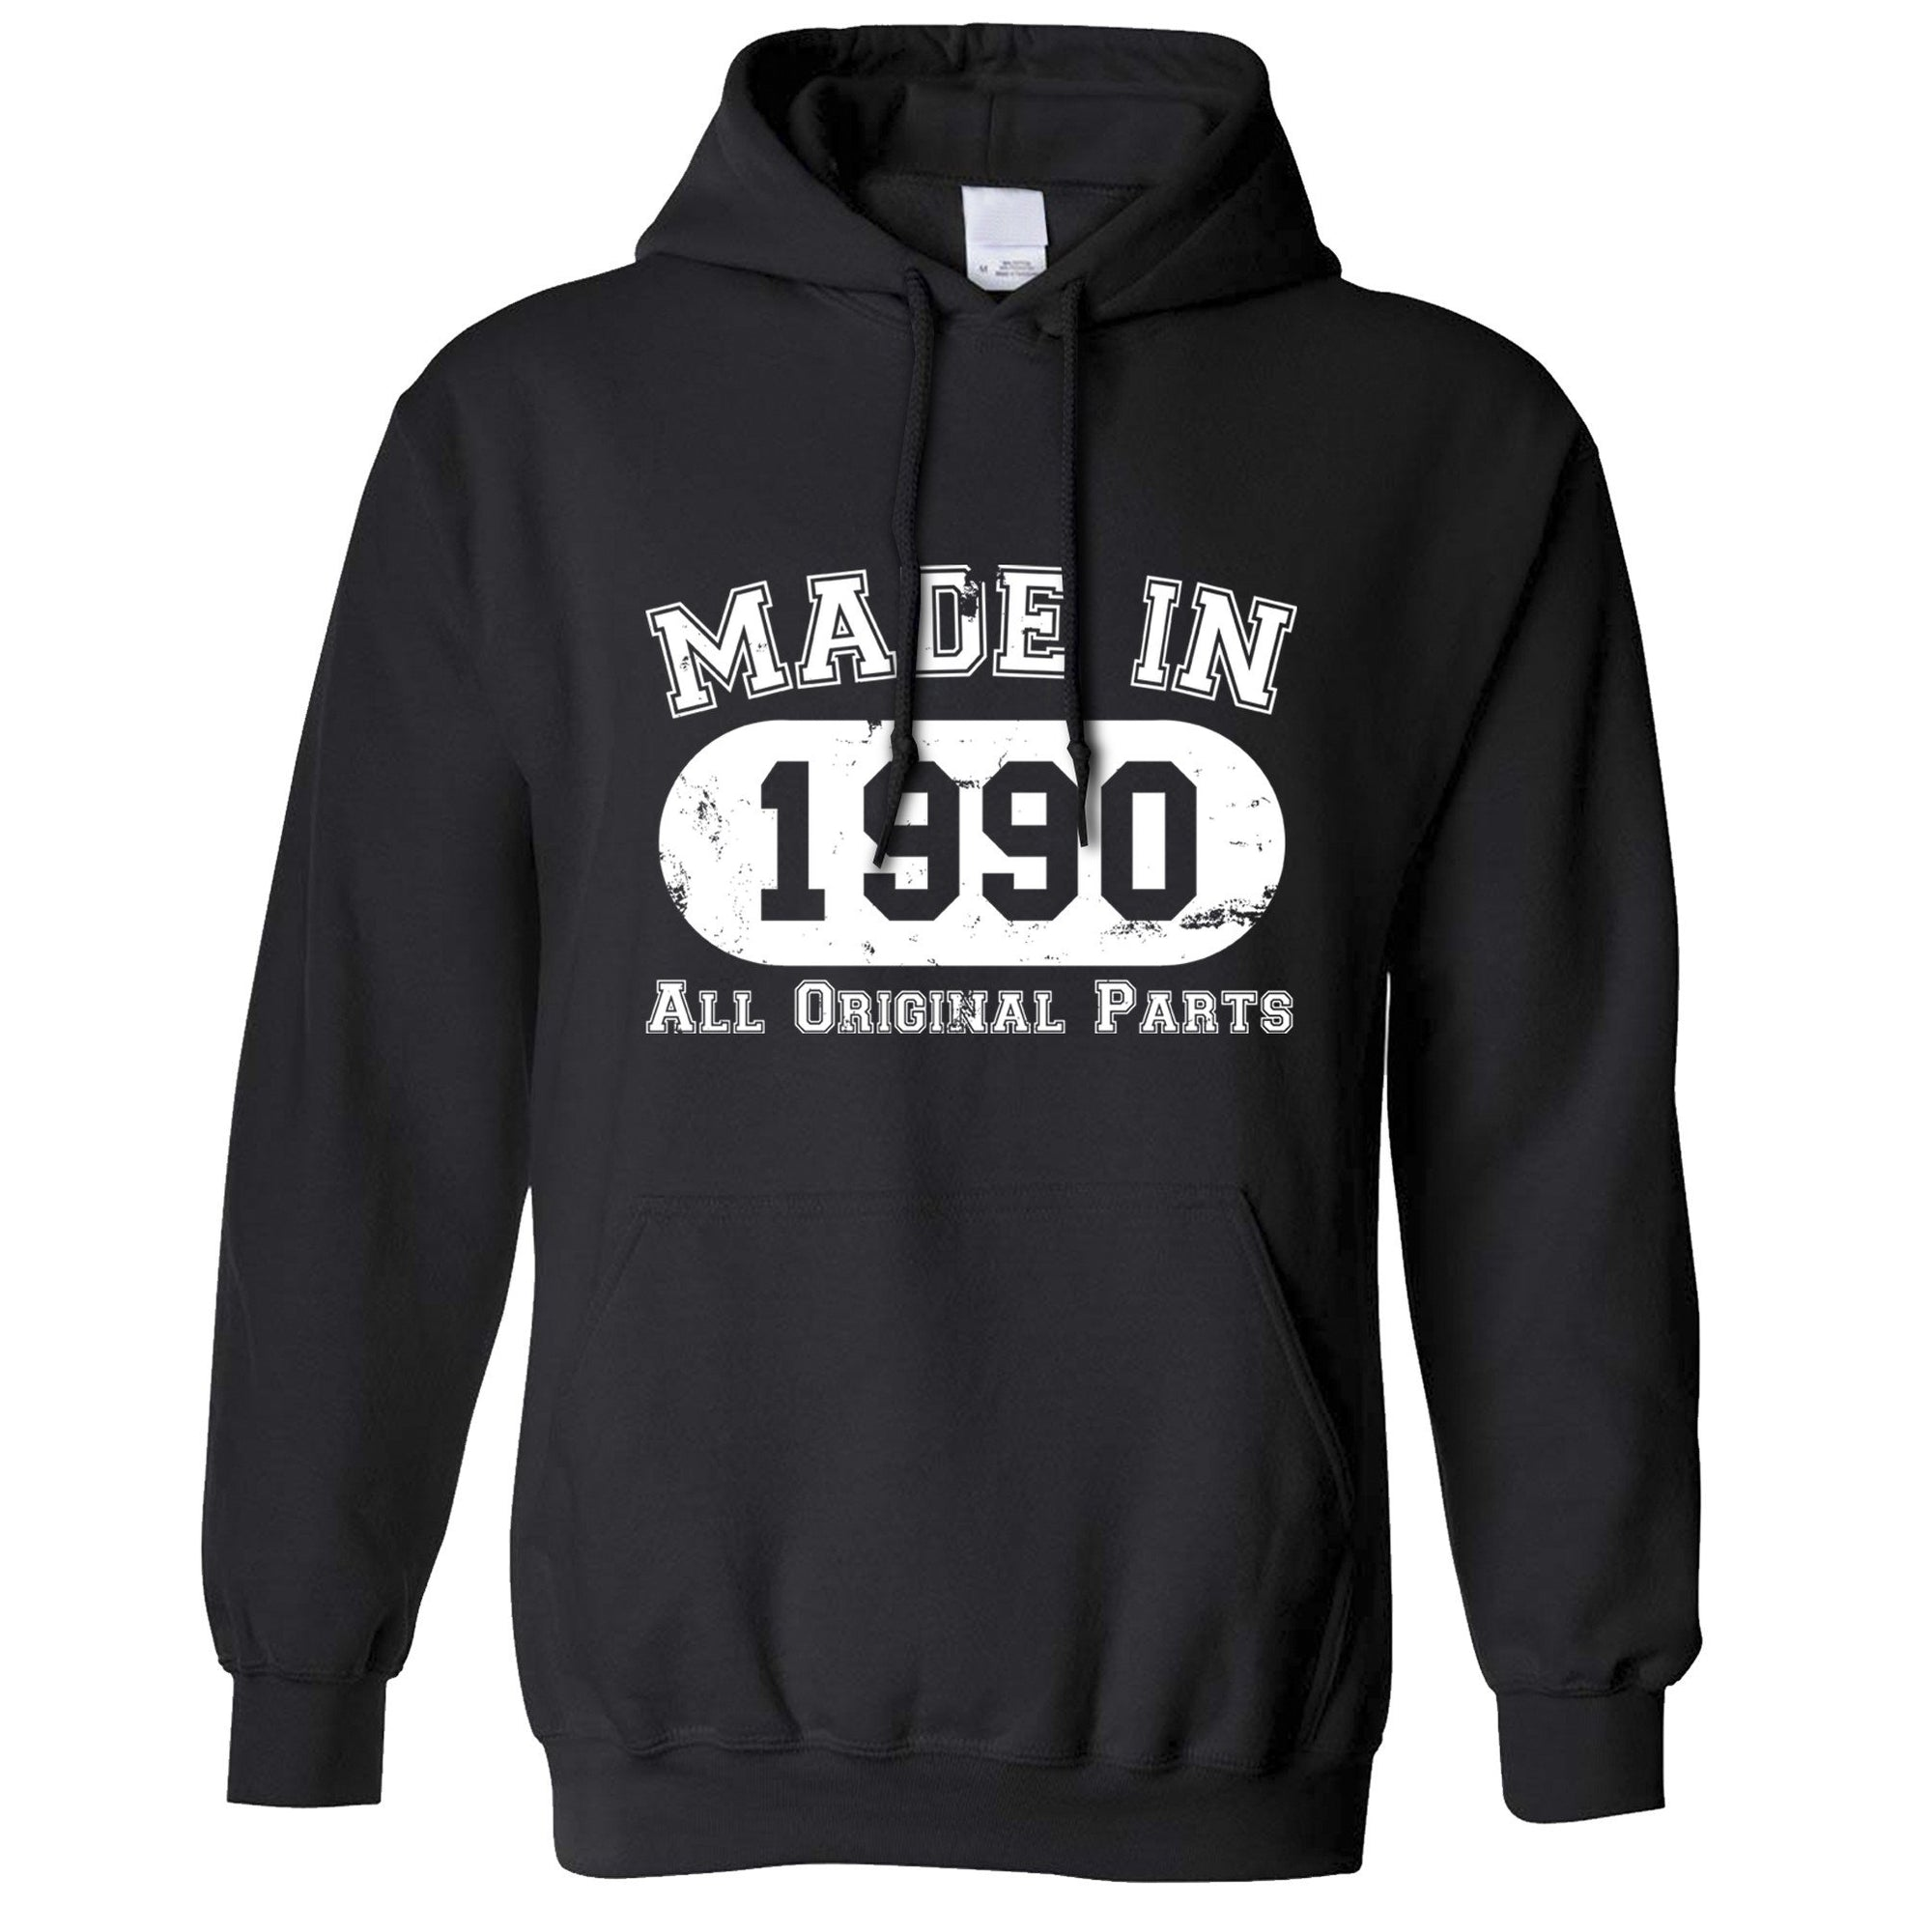 Made in 1990 All Original Parts Hoodie [Distressed]